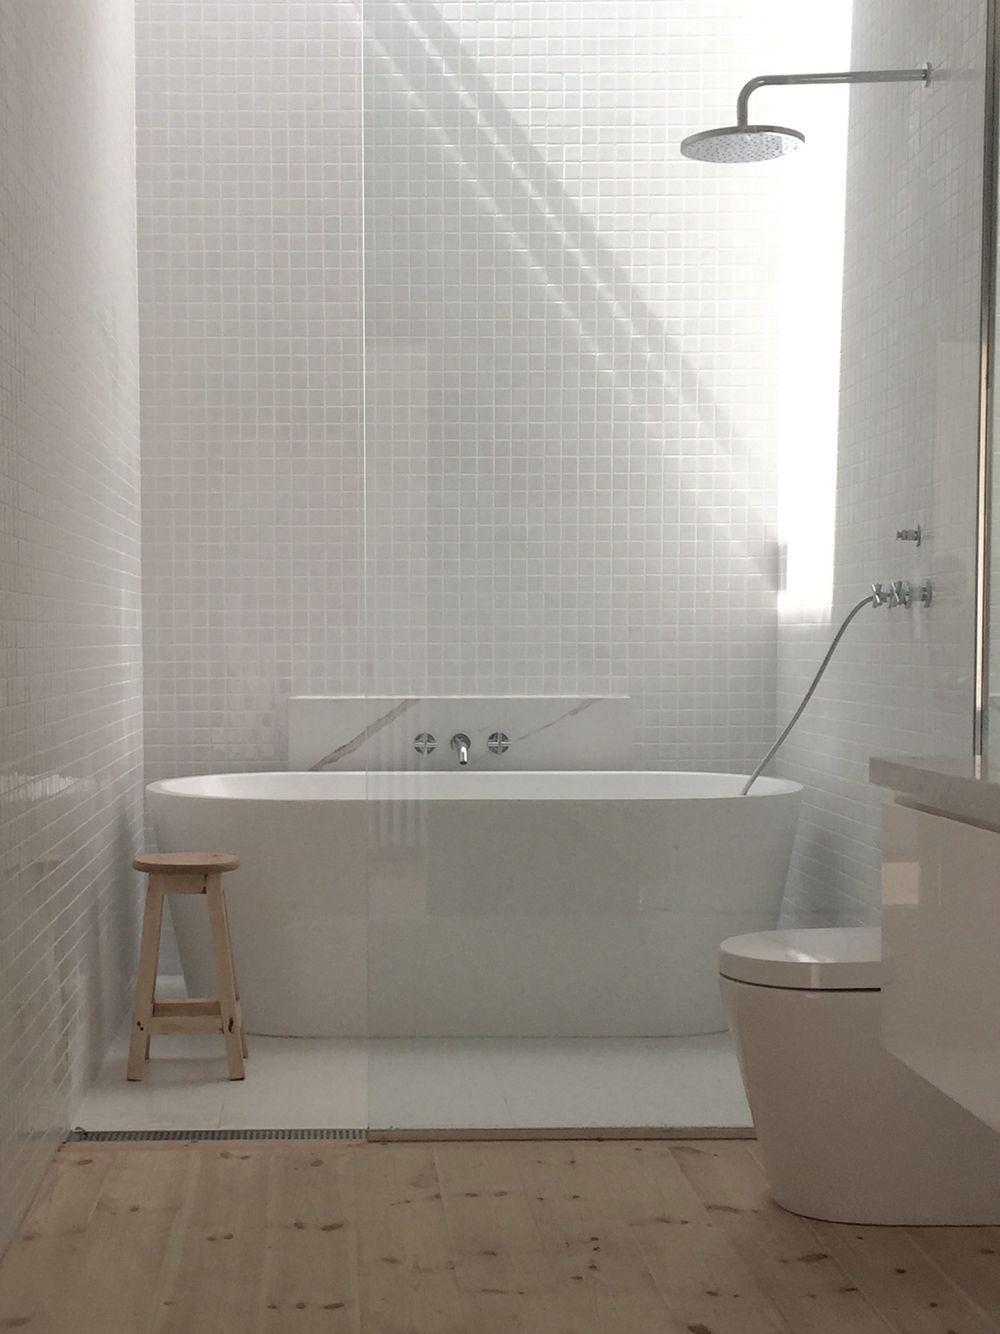 bathroom tiles matt or gloss bathroom gloss white 30x30 tiles matt white 600 x 22433